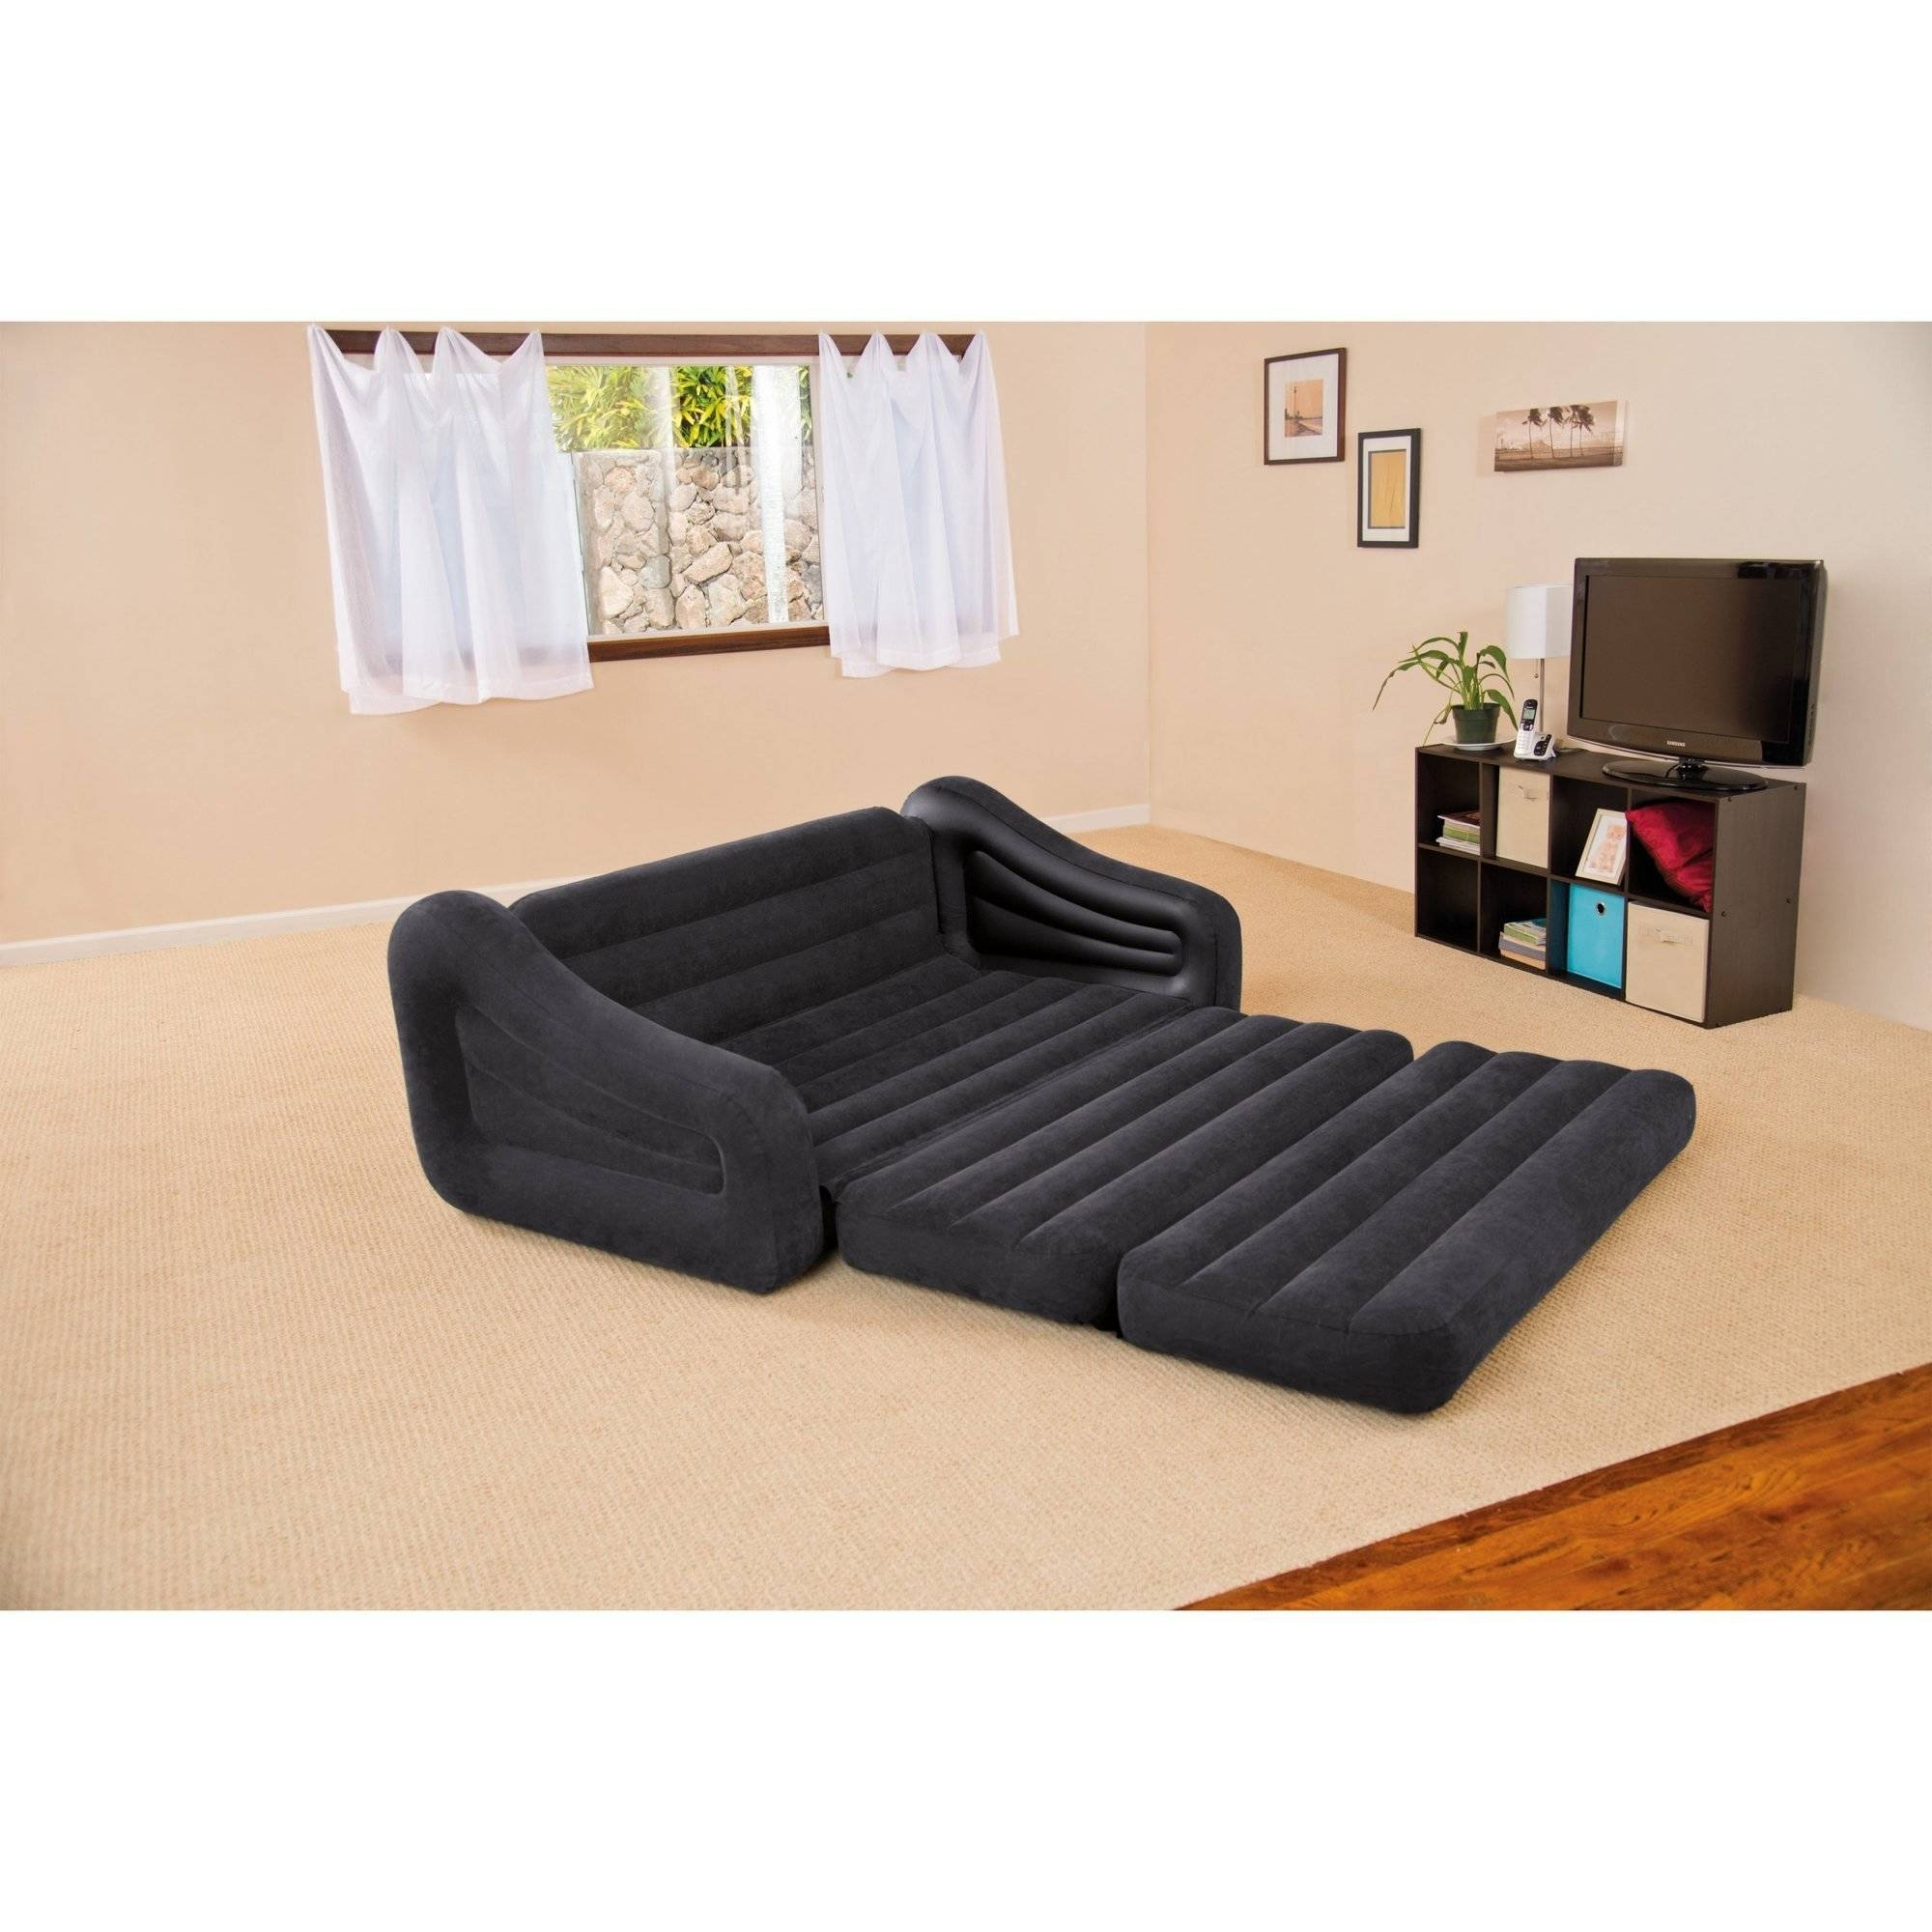 Intex Queen Inflatable Pull Out Sofa Bed – Walmart With Regard To Intex Queen Sleeper Sofas (View 13 of 15)